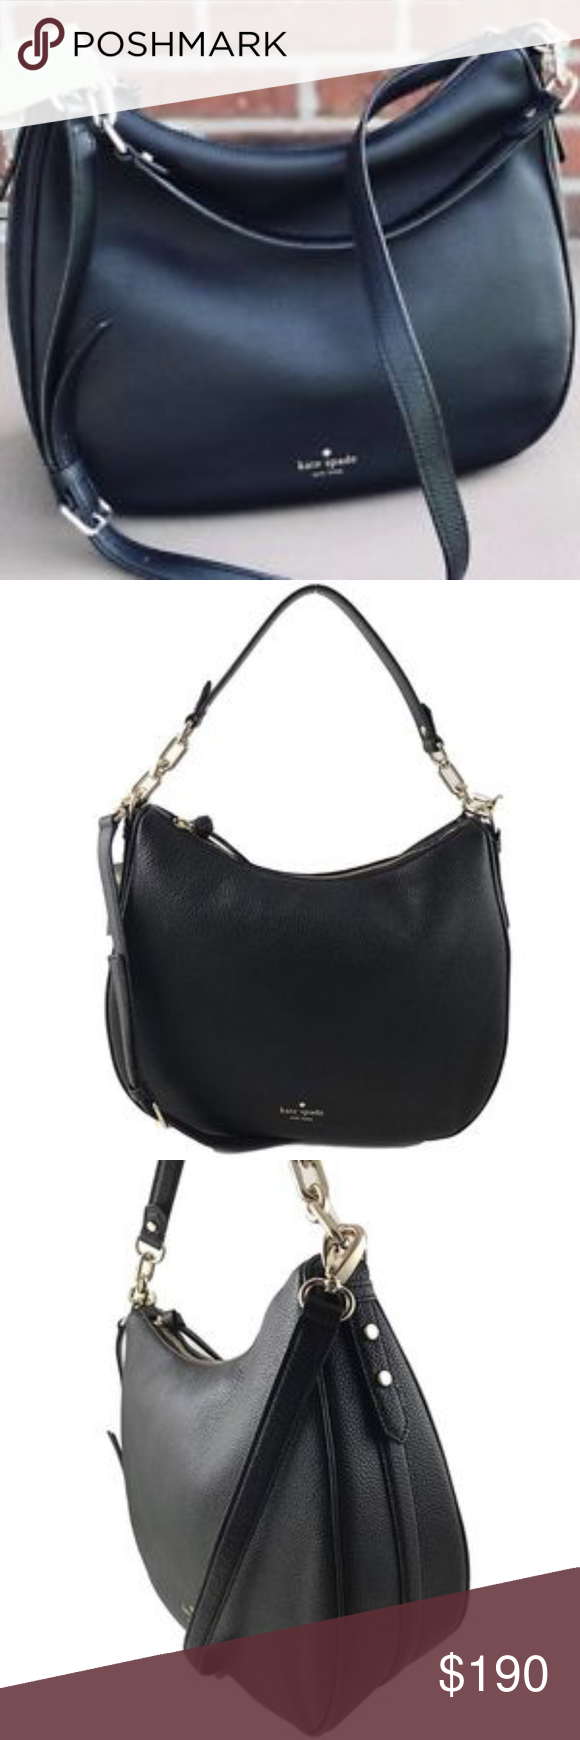 d2ce32064f Kate Spade Vivian Mulberry Street Hobo - NWT VIVIAN MULBERRY STREET LEATHER  HOBO SHOULDER BAG Can